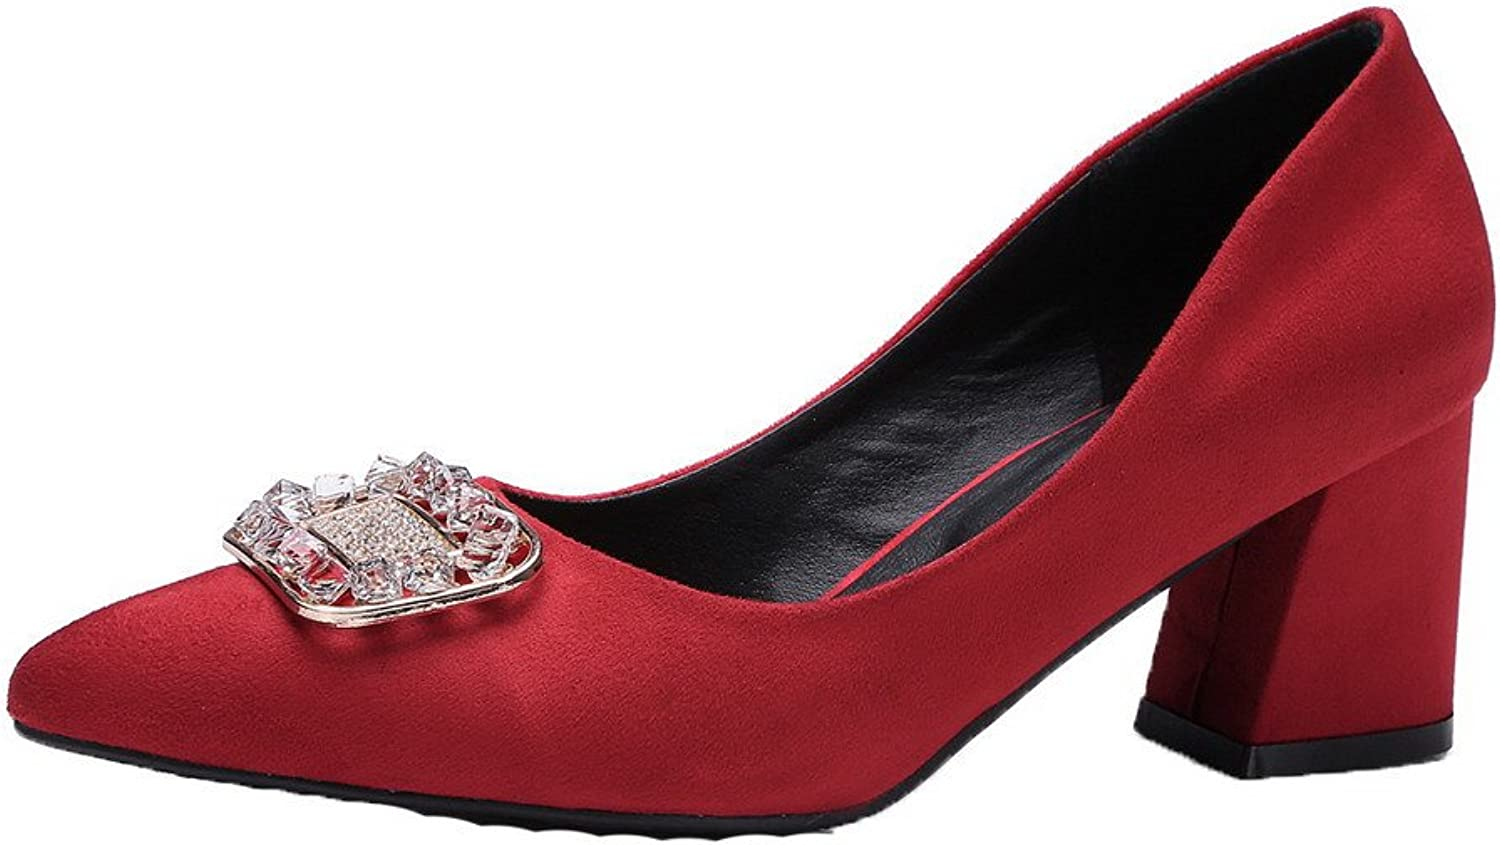 AmoonyFashion Women's Frosted Pointed Closed Toe Kitten Heels Pull On Solid Pumps-shoes